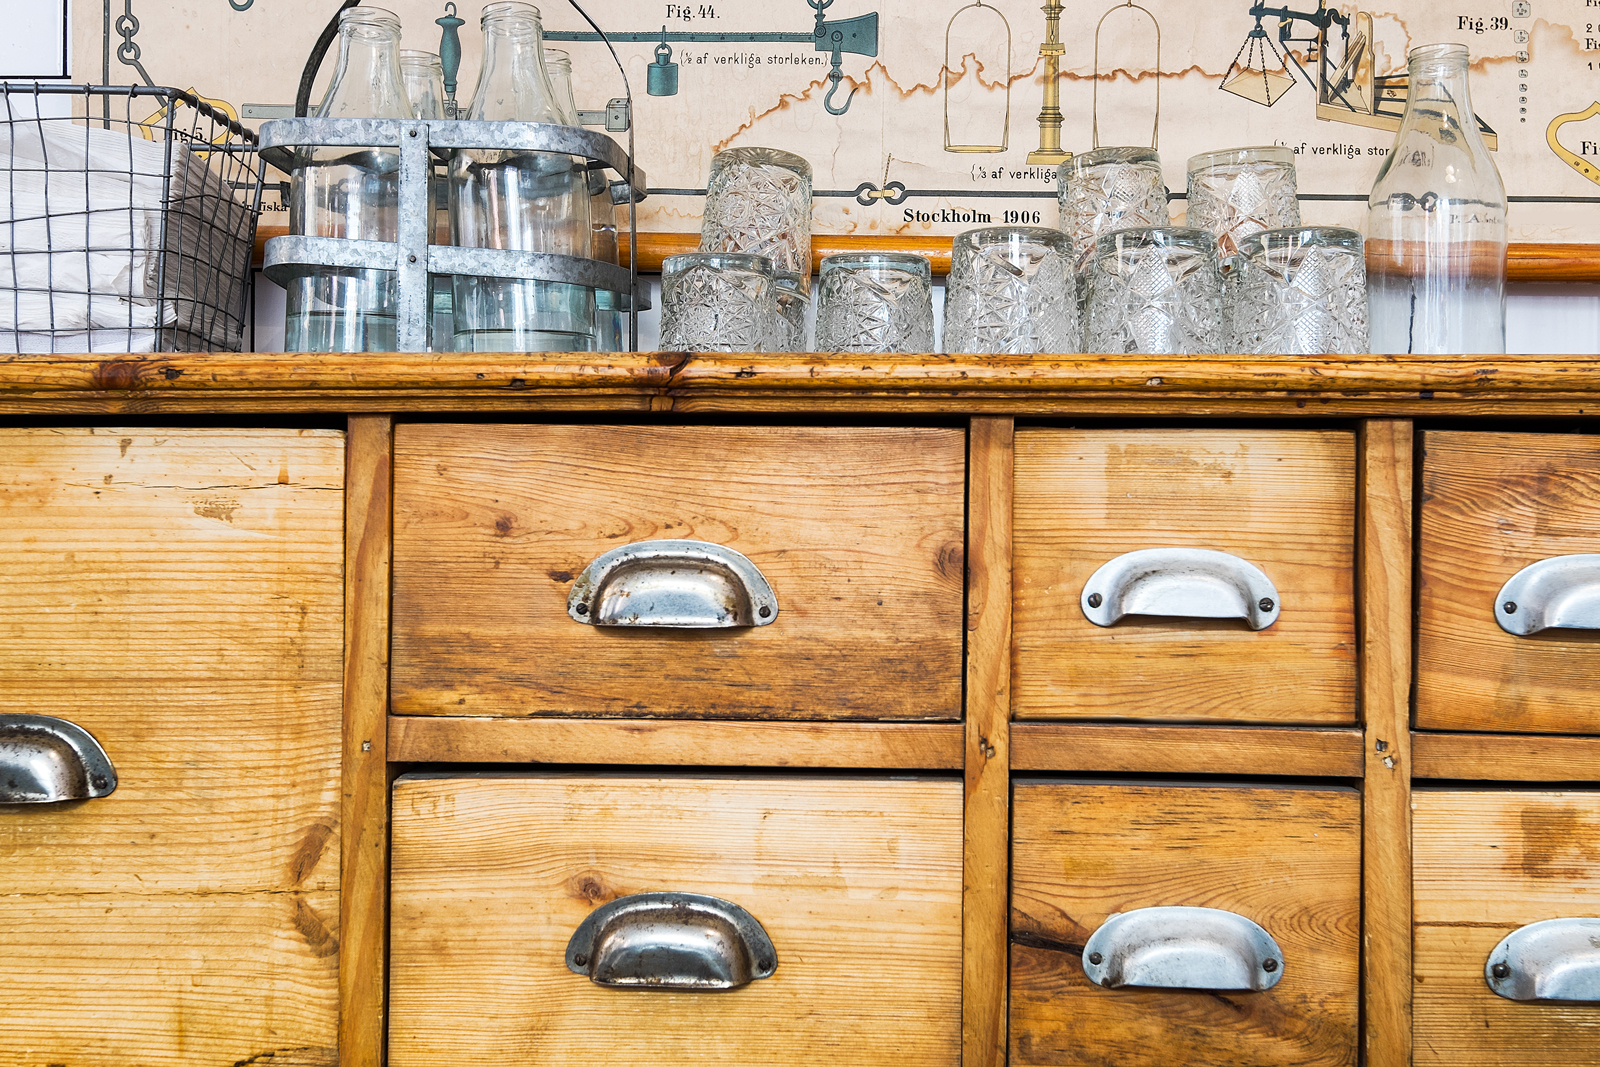 Reclaimed Apothecary Sideboard  Design Thought: Any beautiful piece of reclaimed furniture can find a place in a design plan. This apothecary sideboard has been repurposed for used as an island in the kitchen.